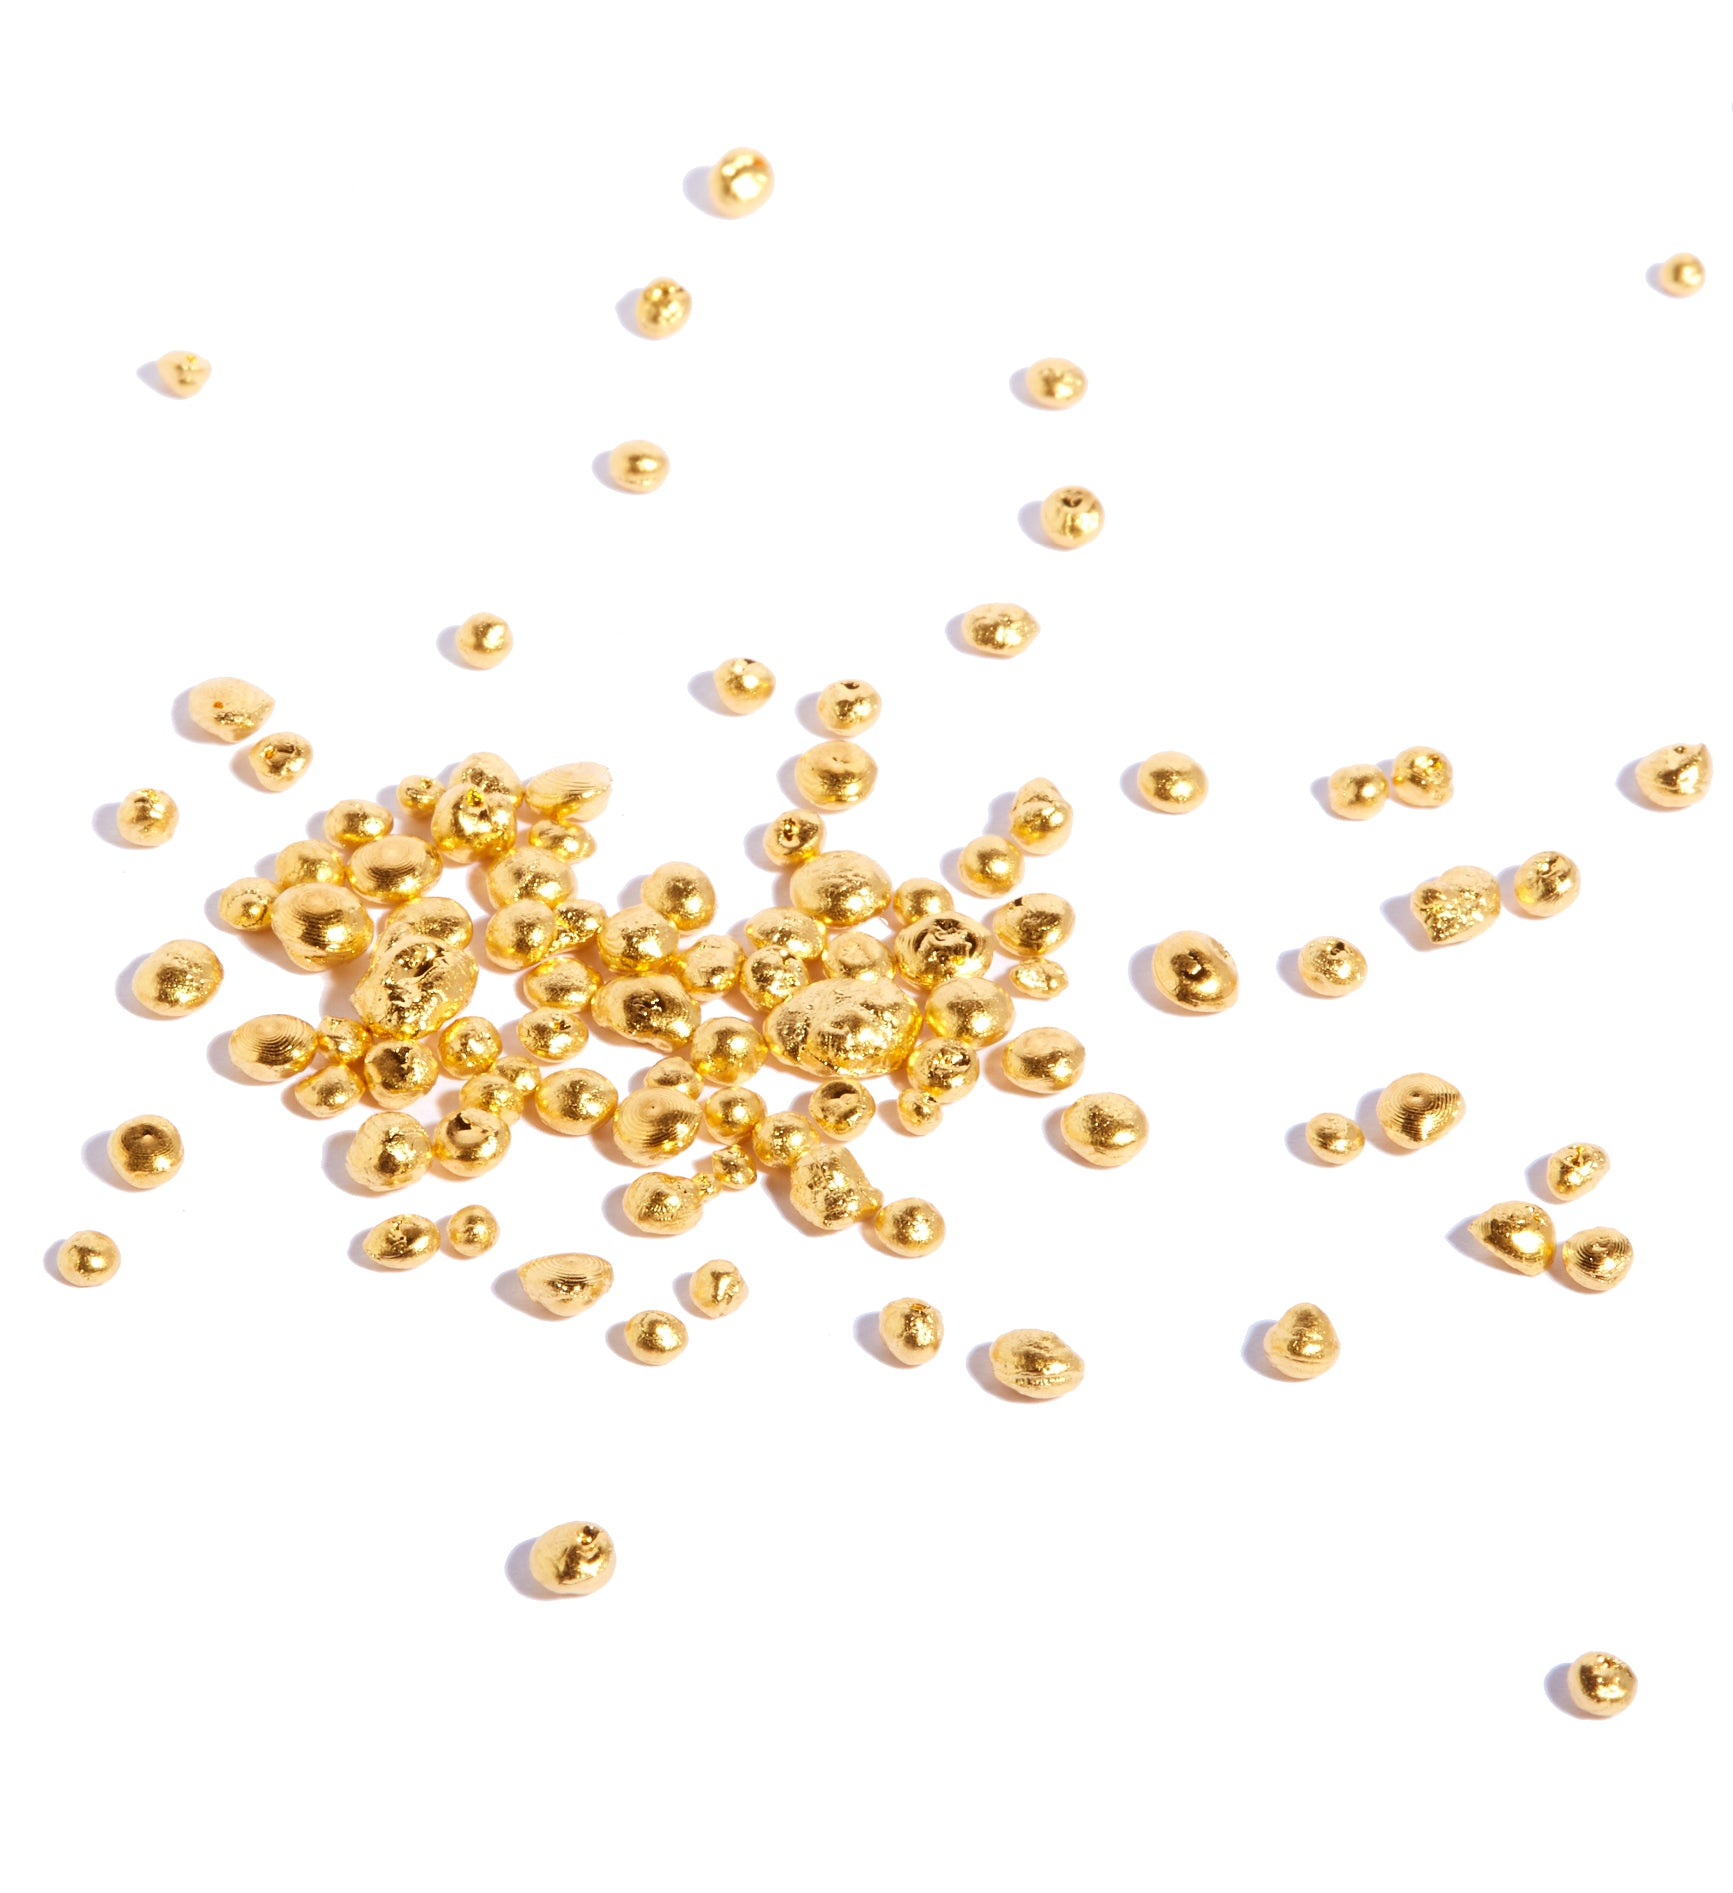 https://cdn.shopify.com/s/files/1/0571/9261/t/15/assets/gold%20granules-1509602382402.jpg?6737043878067519202